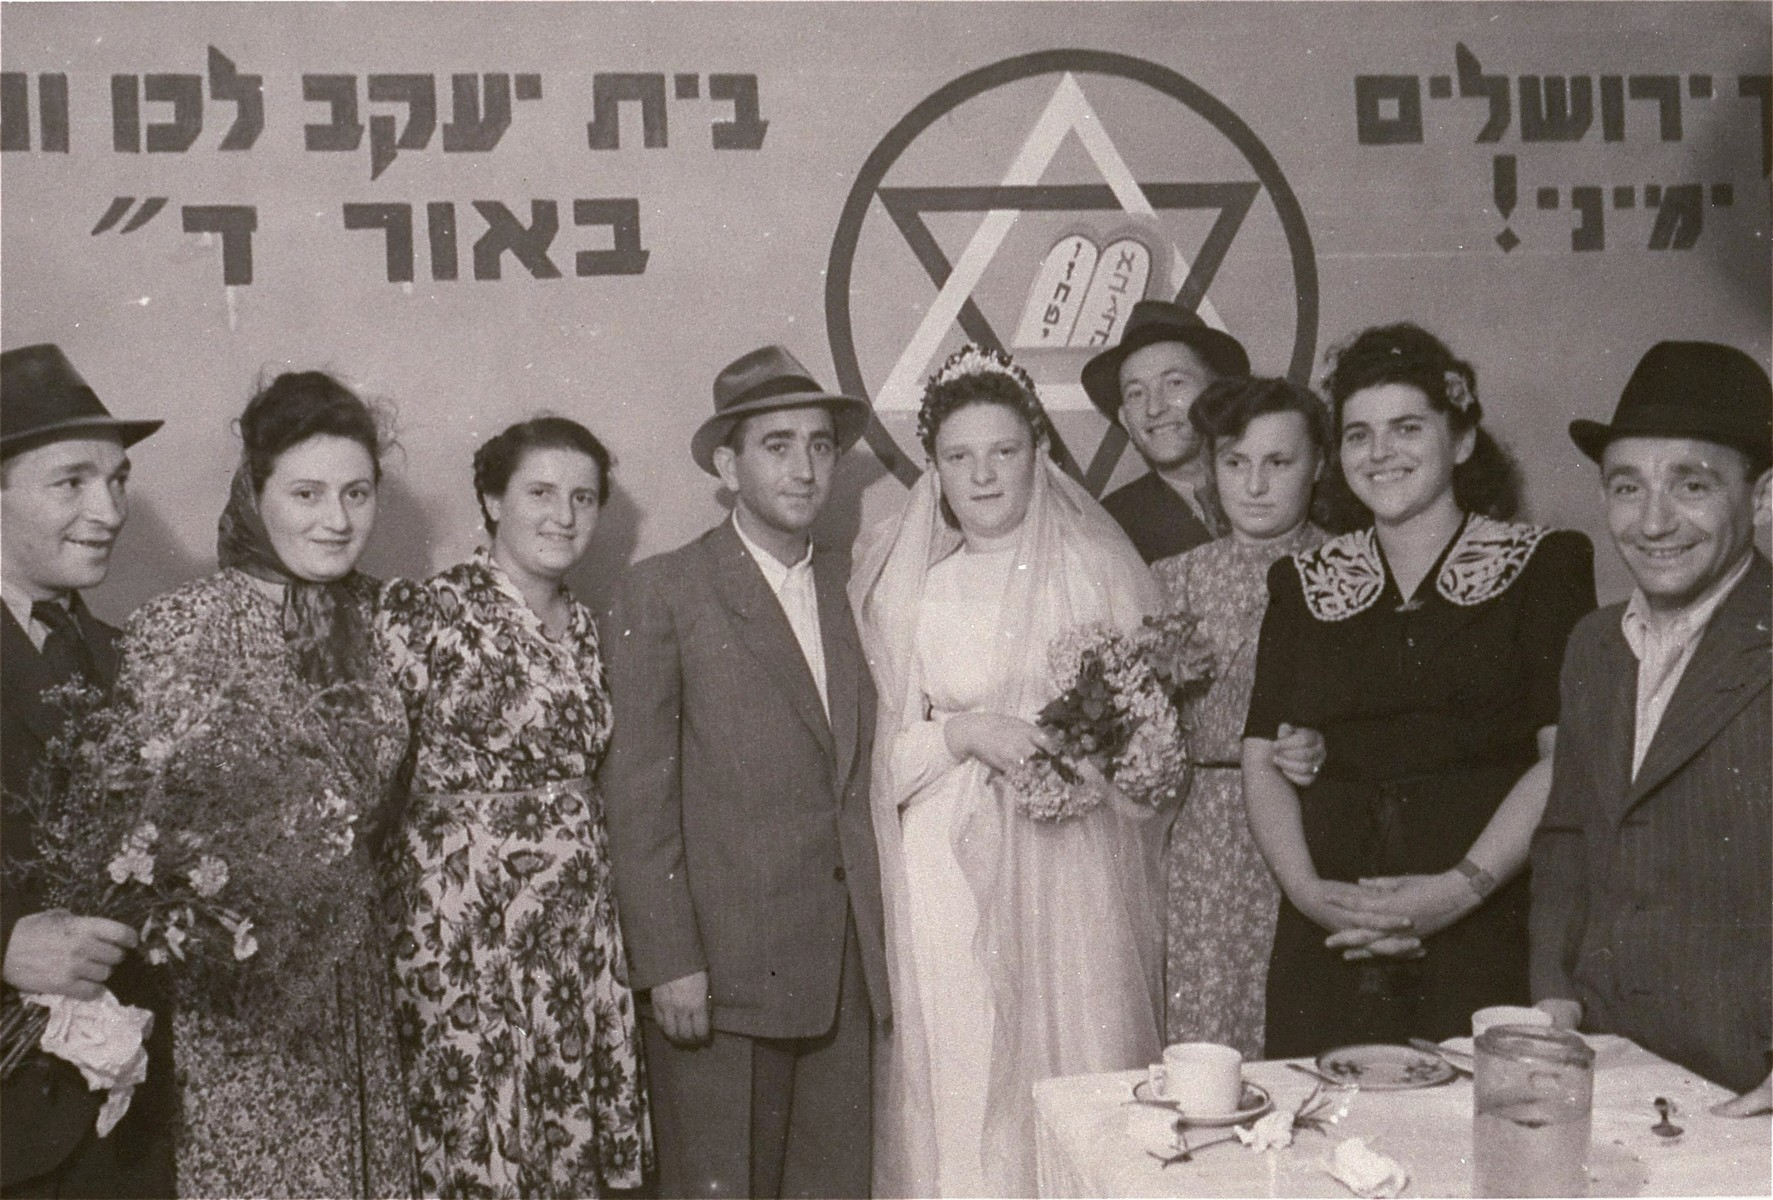 Group portrait of the members of a wedding party at the Zeilsheim displaced persons' camp.   The portrait was taken in front of a large Zionist mural.